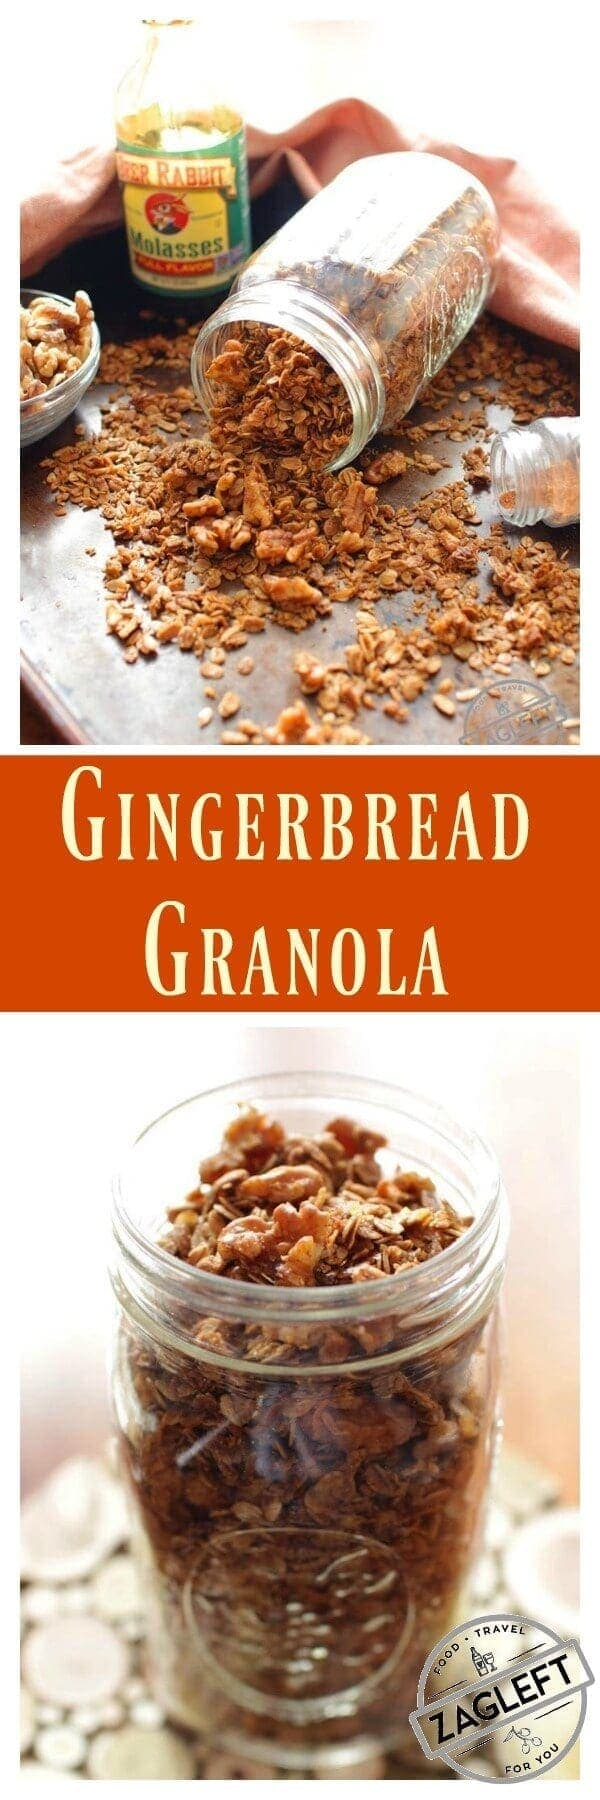 Enjoy the warm spices of the season in this wintertime Gingerbread Granola. Filled with pecans, oats, molasses and maple syrup, it's perfectly spiced and great for breakfast or to snack on.